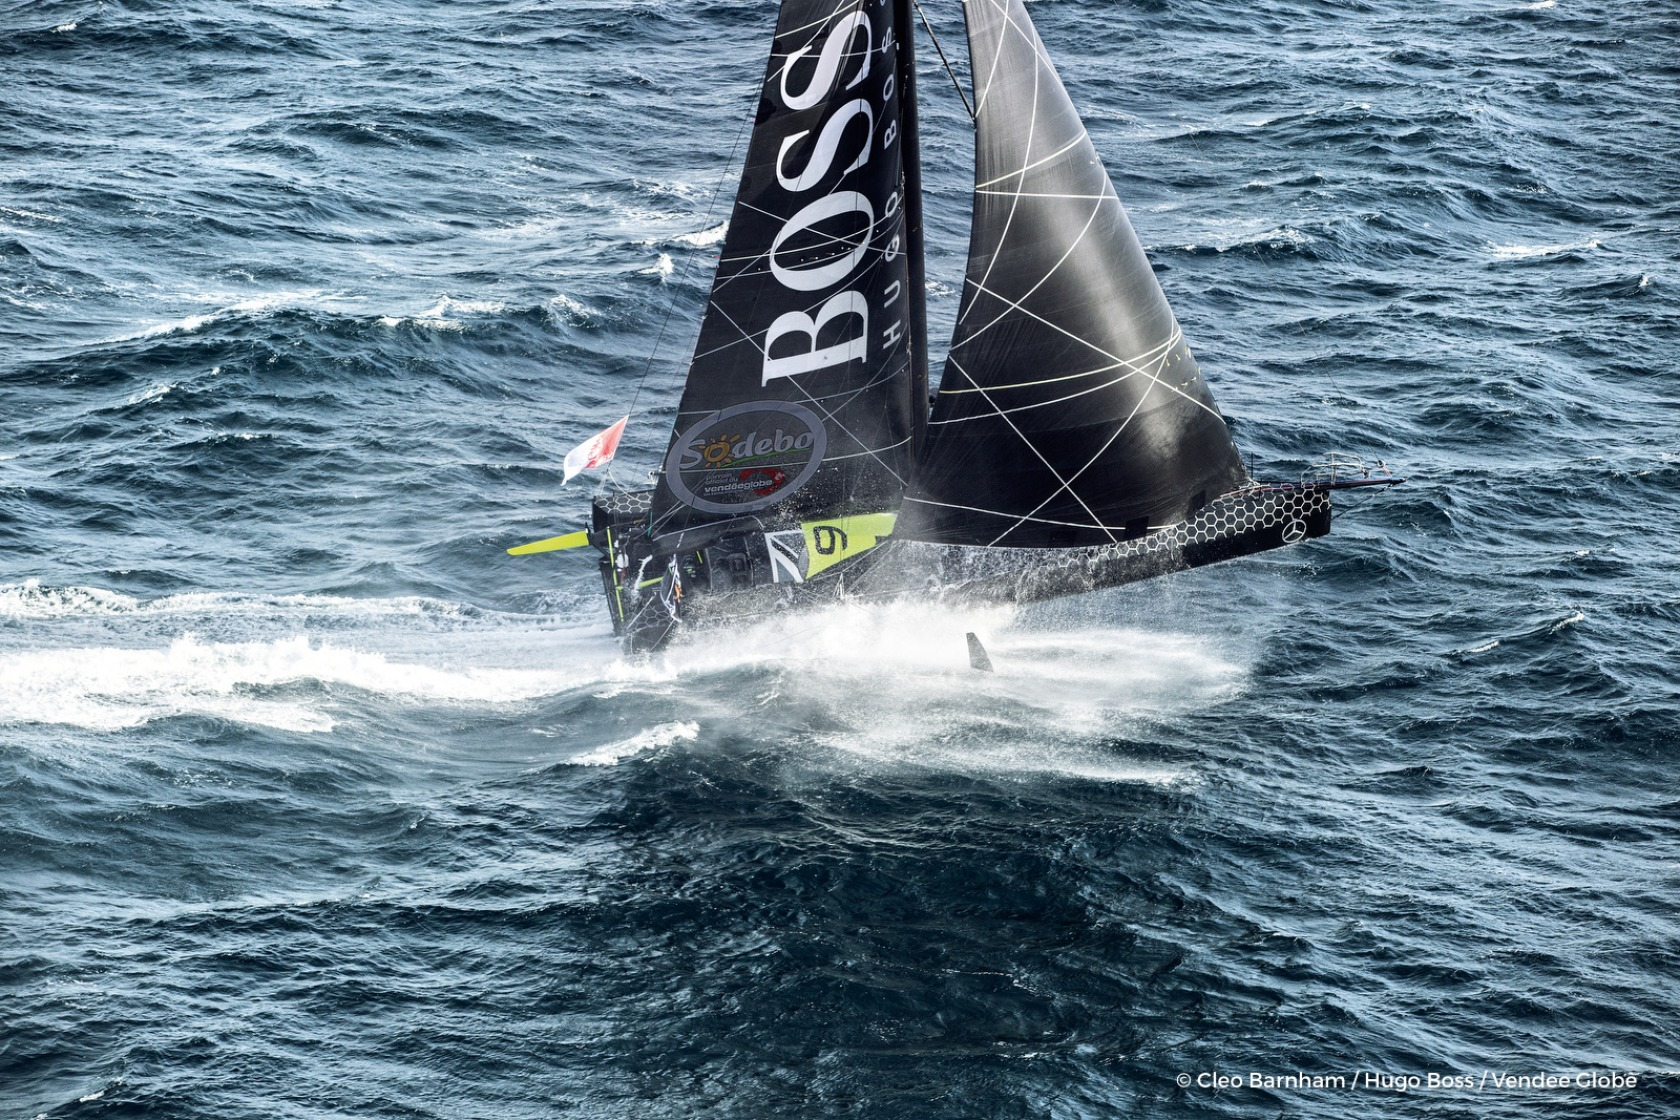 Sailing Aerial Images Of The Imoca Boat Hugo Boss ôァンデ °ローブ Õォイル ȉ‡ 1680x1120 Wallpaper Teahub Io